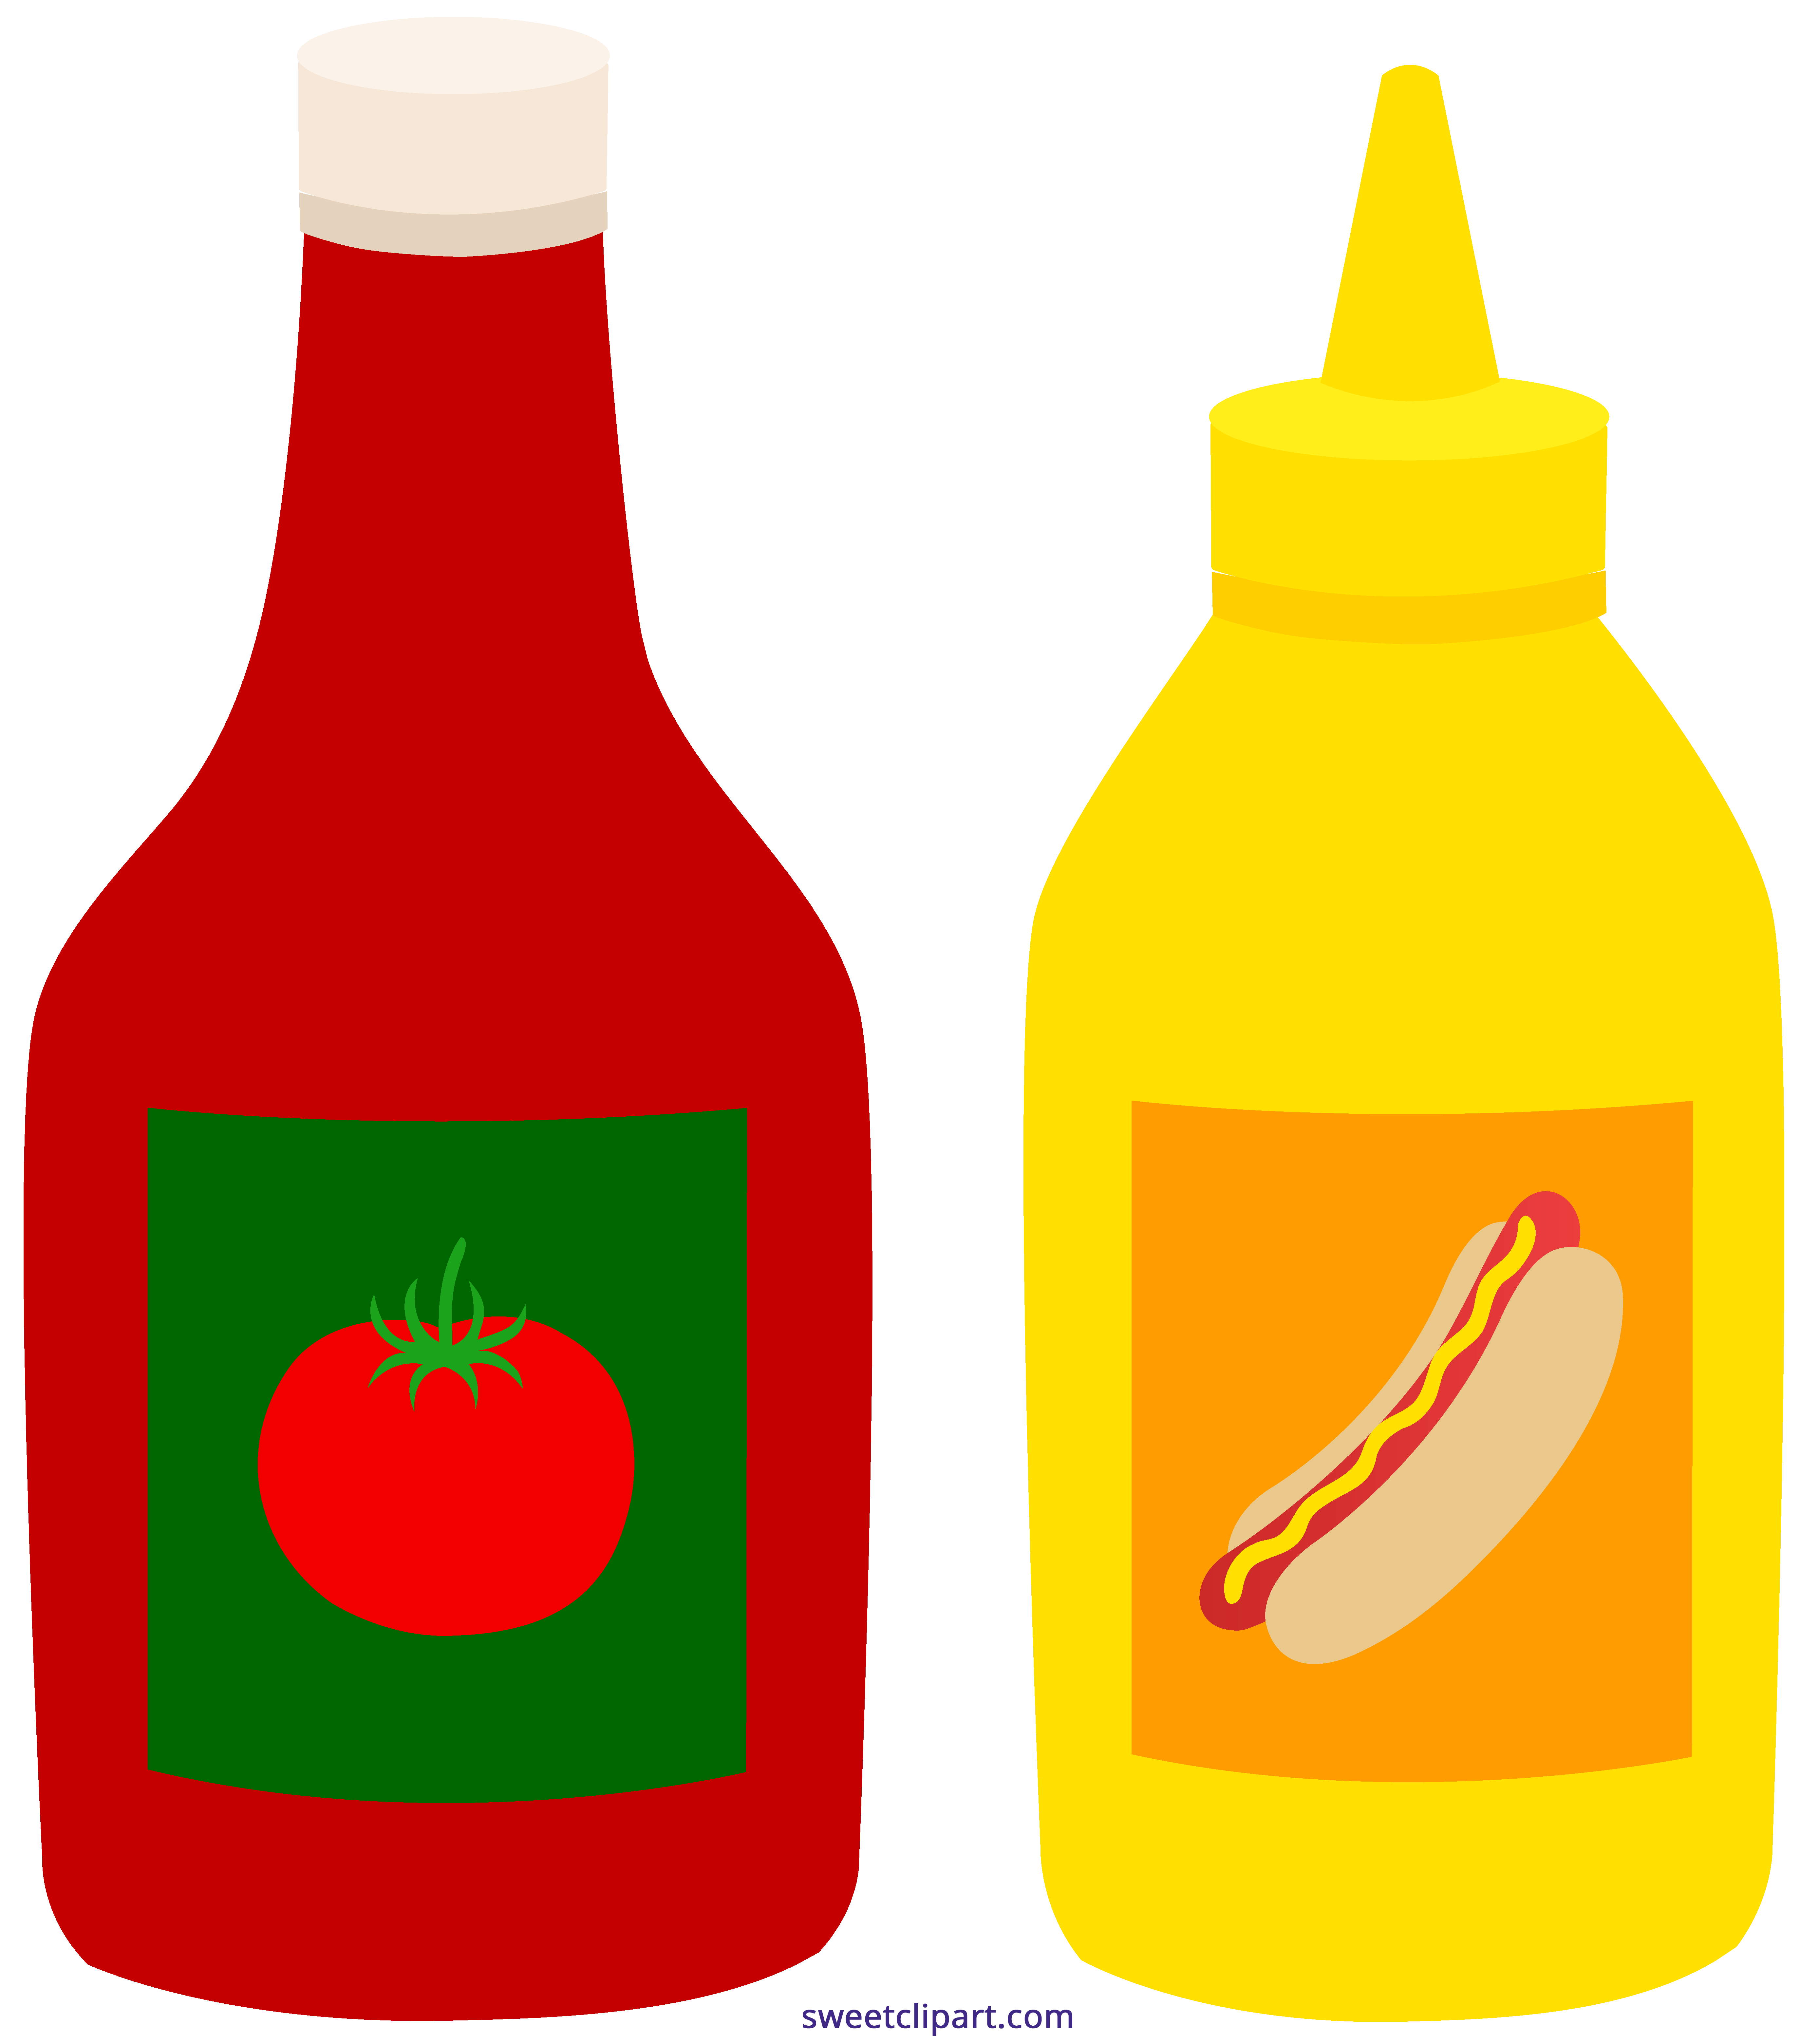 image black and white download Mustard bottles sweet clip. Ketchup clipart